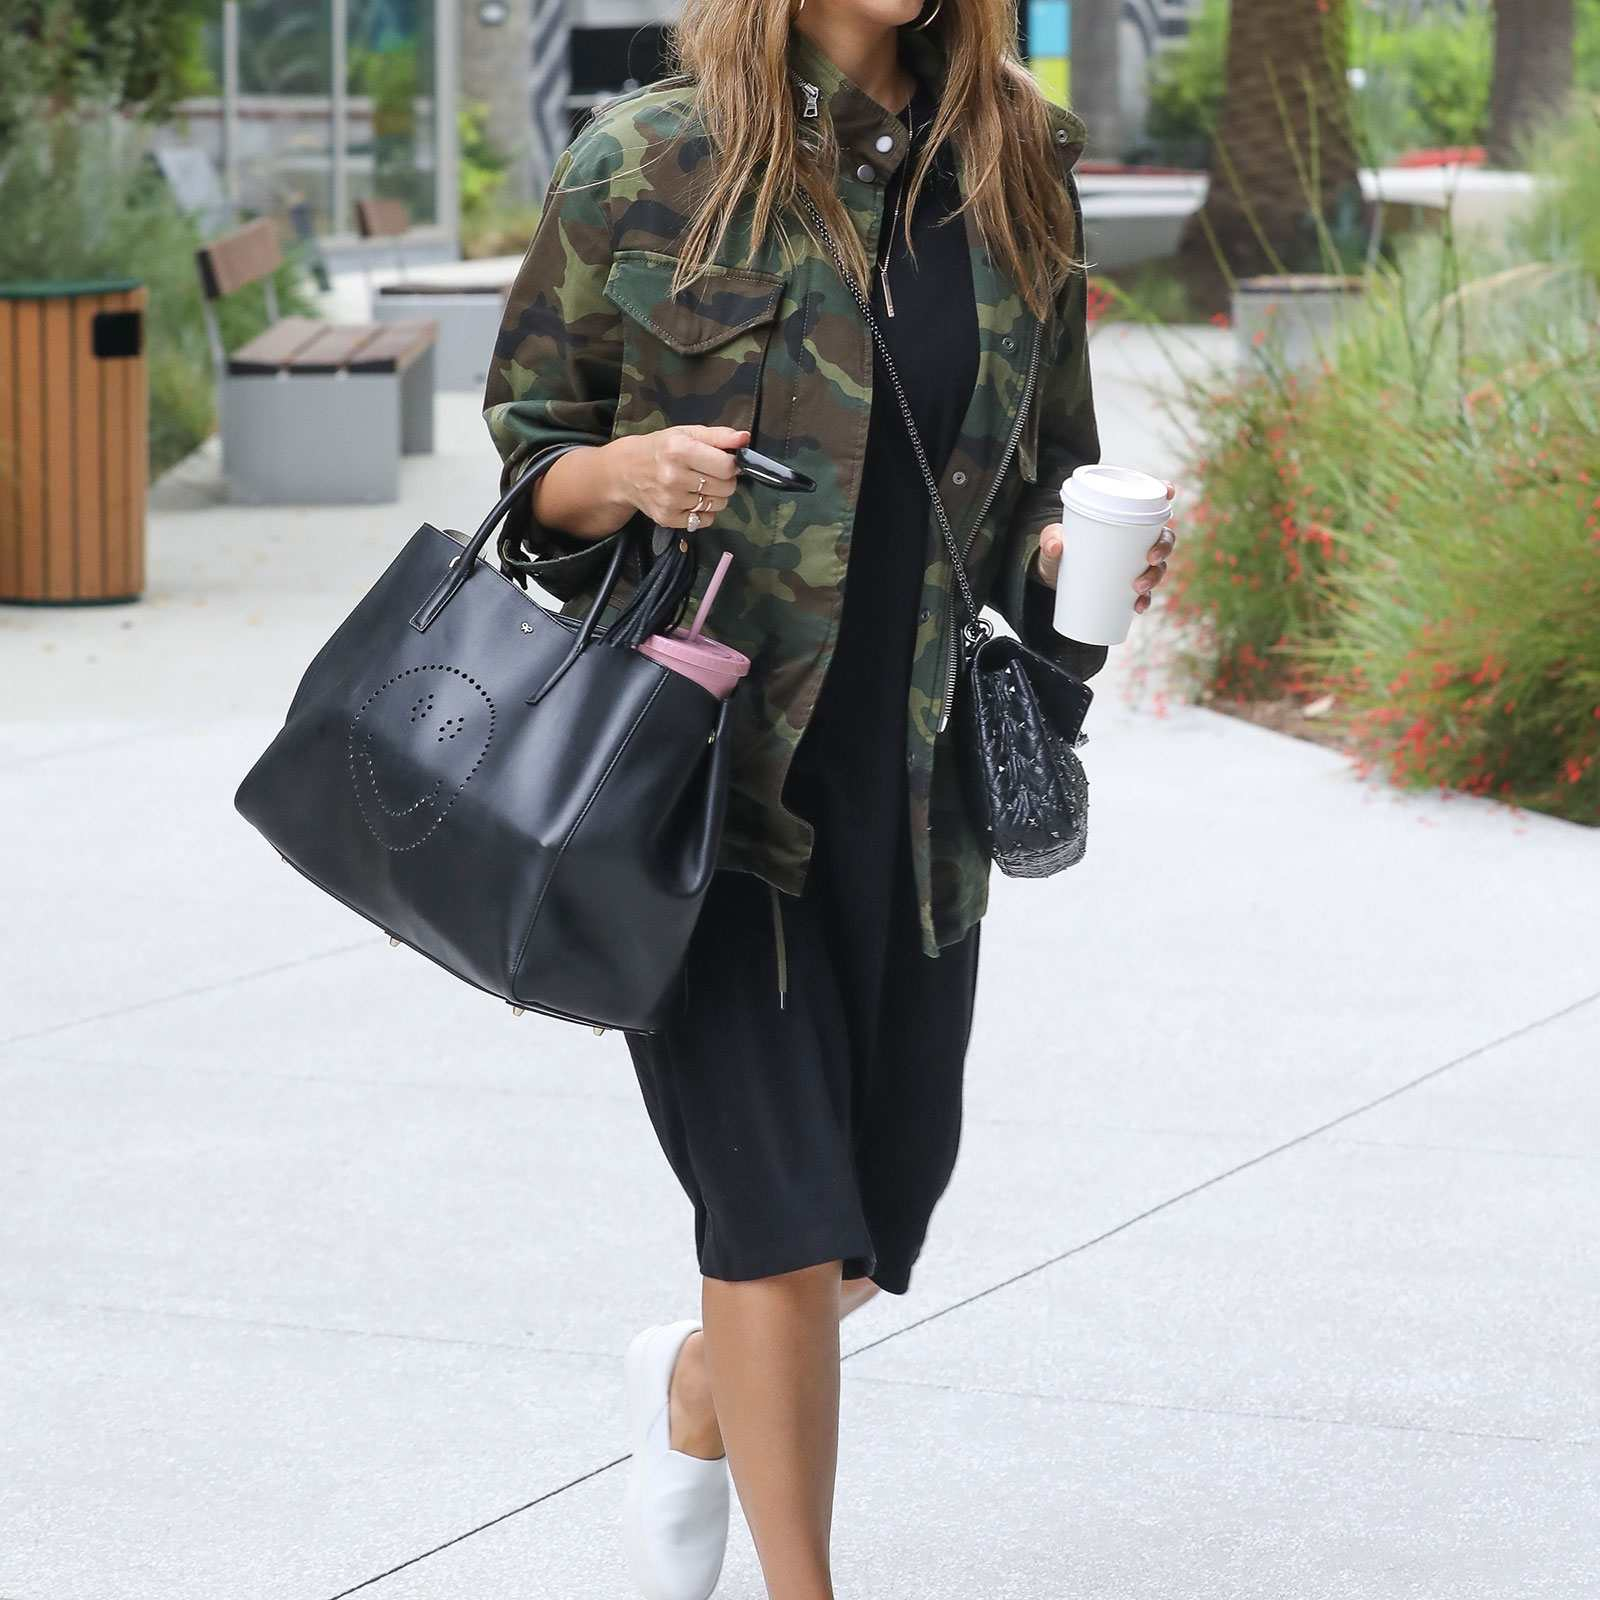 e263c4e18 Woman in camouflage print jacket and black dress and sneakers